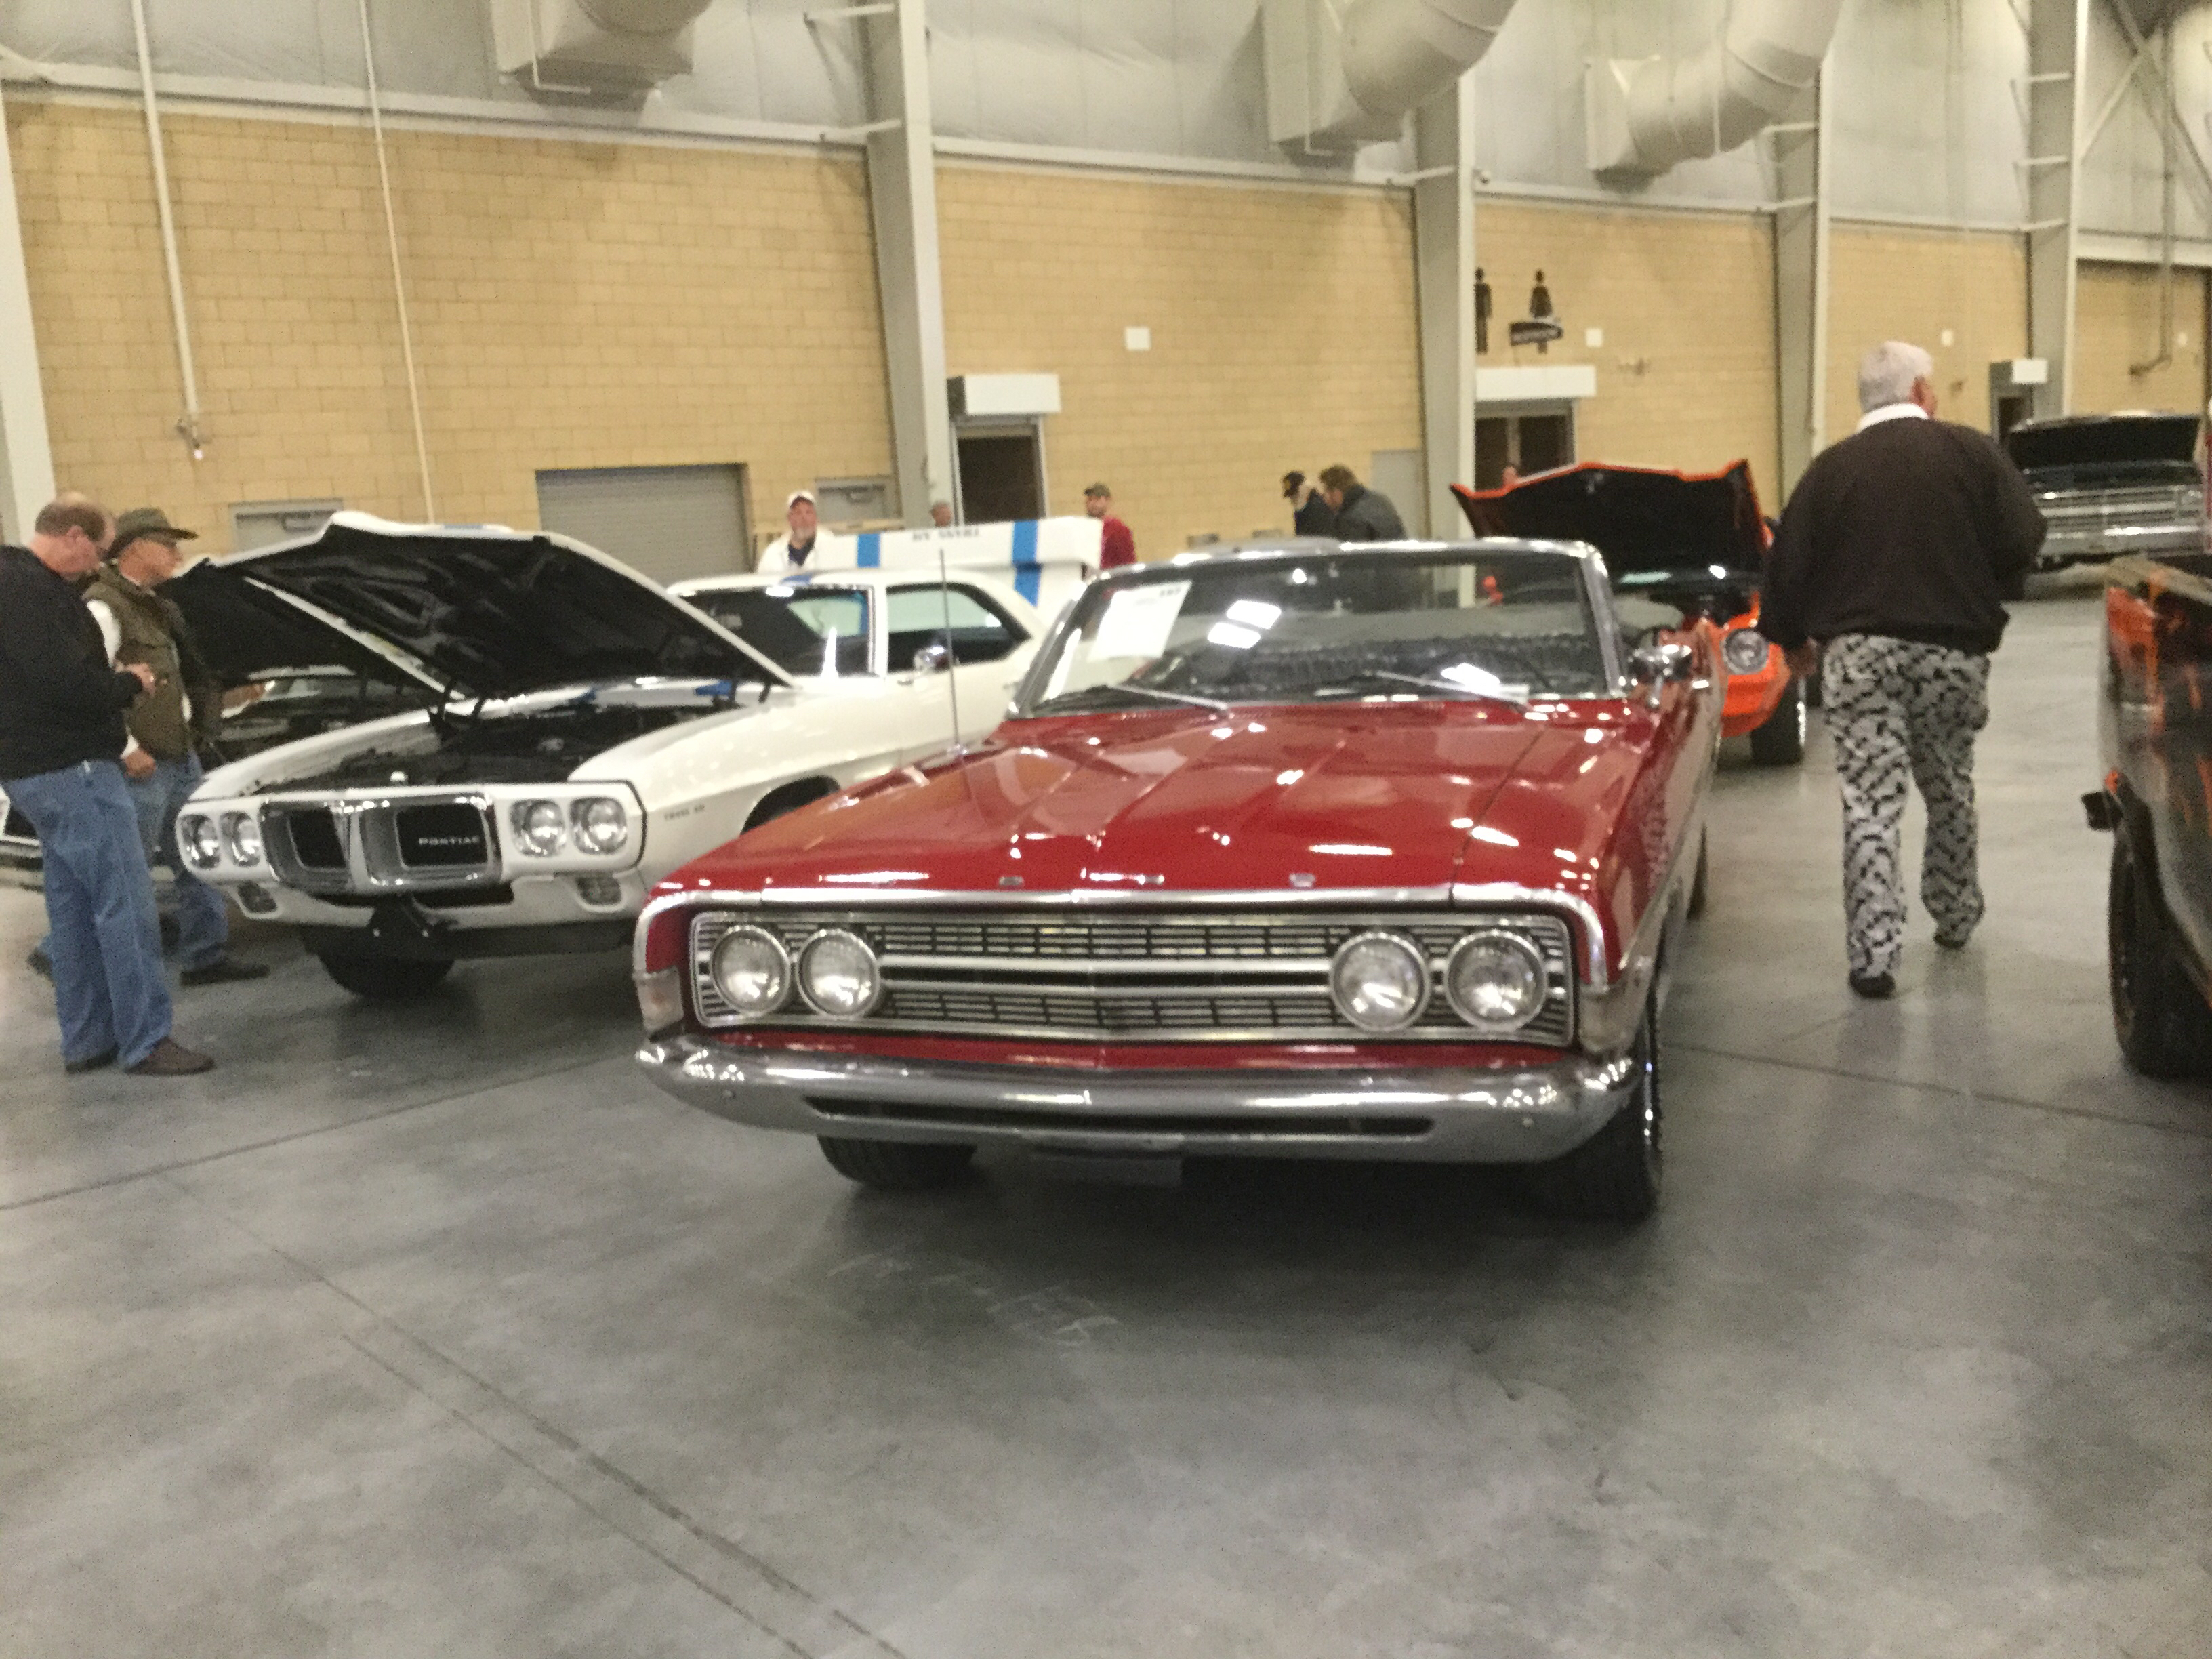 1968 Ford Fairlane Values | Hagerty Valuation Tool®